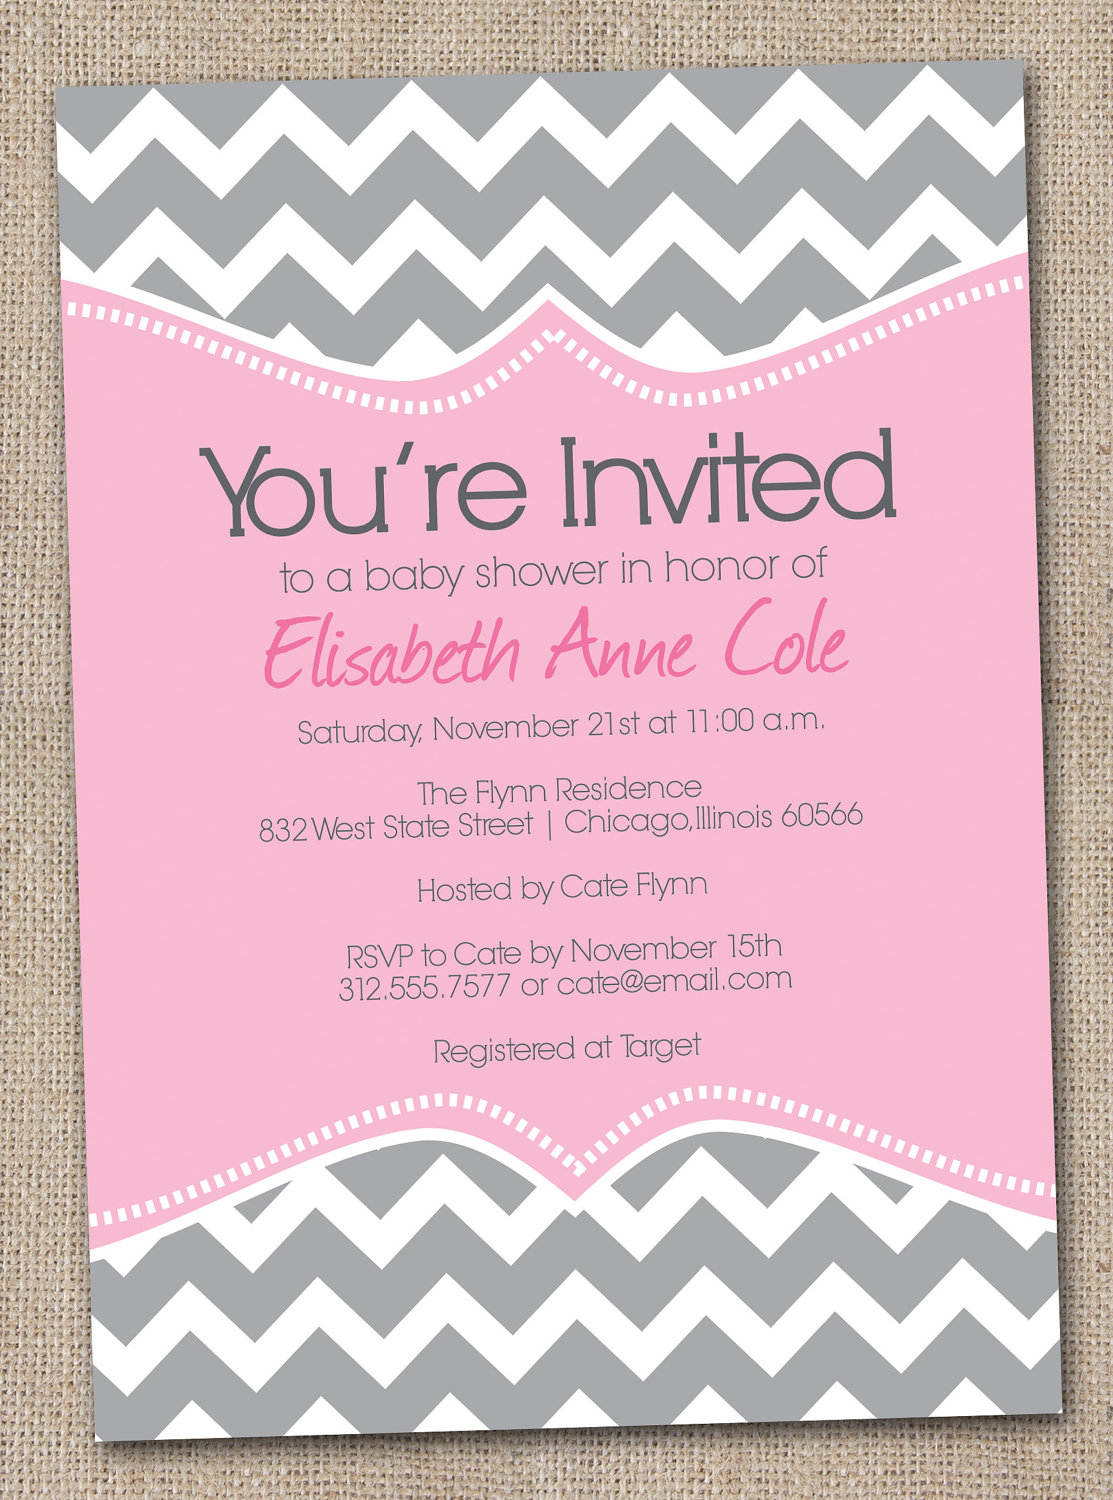 Full Size of Baby Shower:63+ Delightful Cheap Baby Shower Invitations Image Inspirations Arreglos Para Baby Shower Baby Shower Centerpieces Baby Shower Venues Nyc Baby Shower Stuff